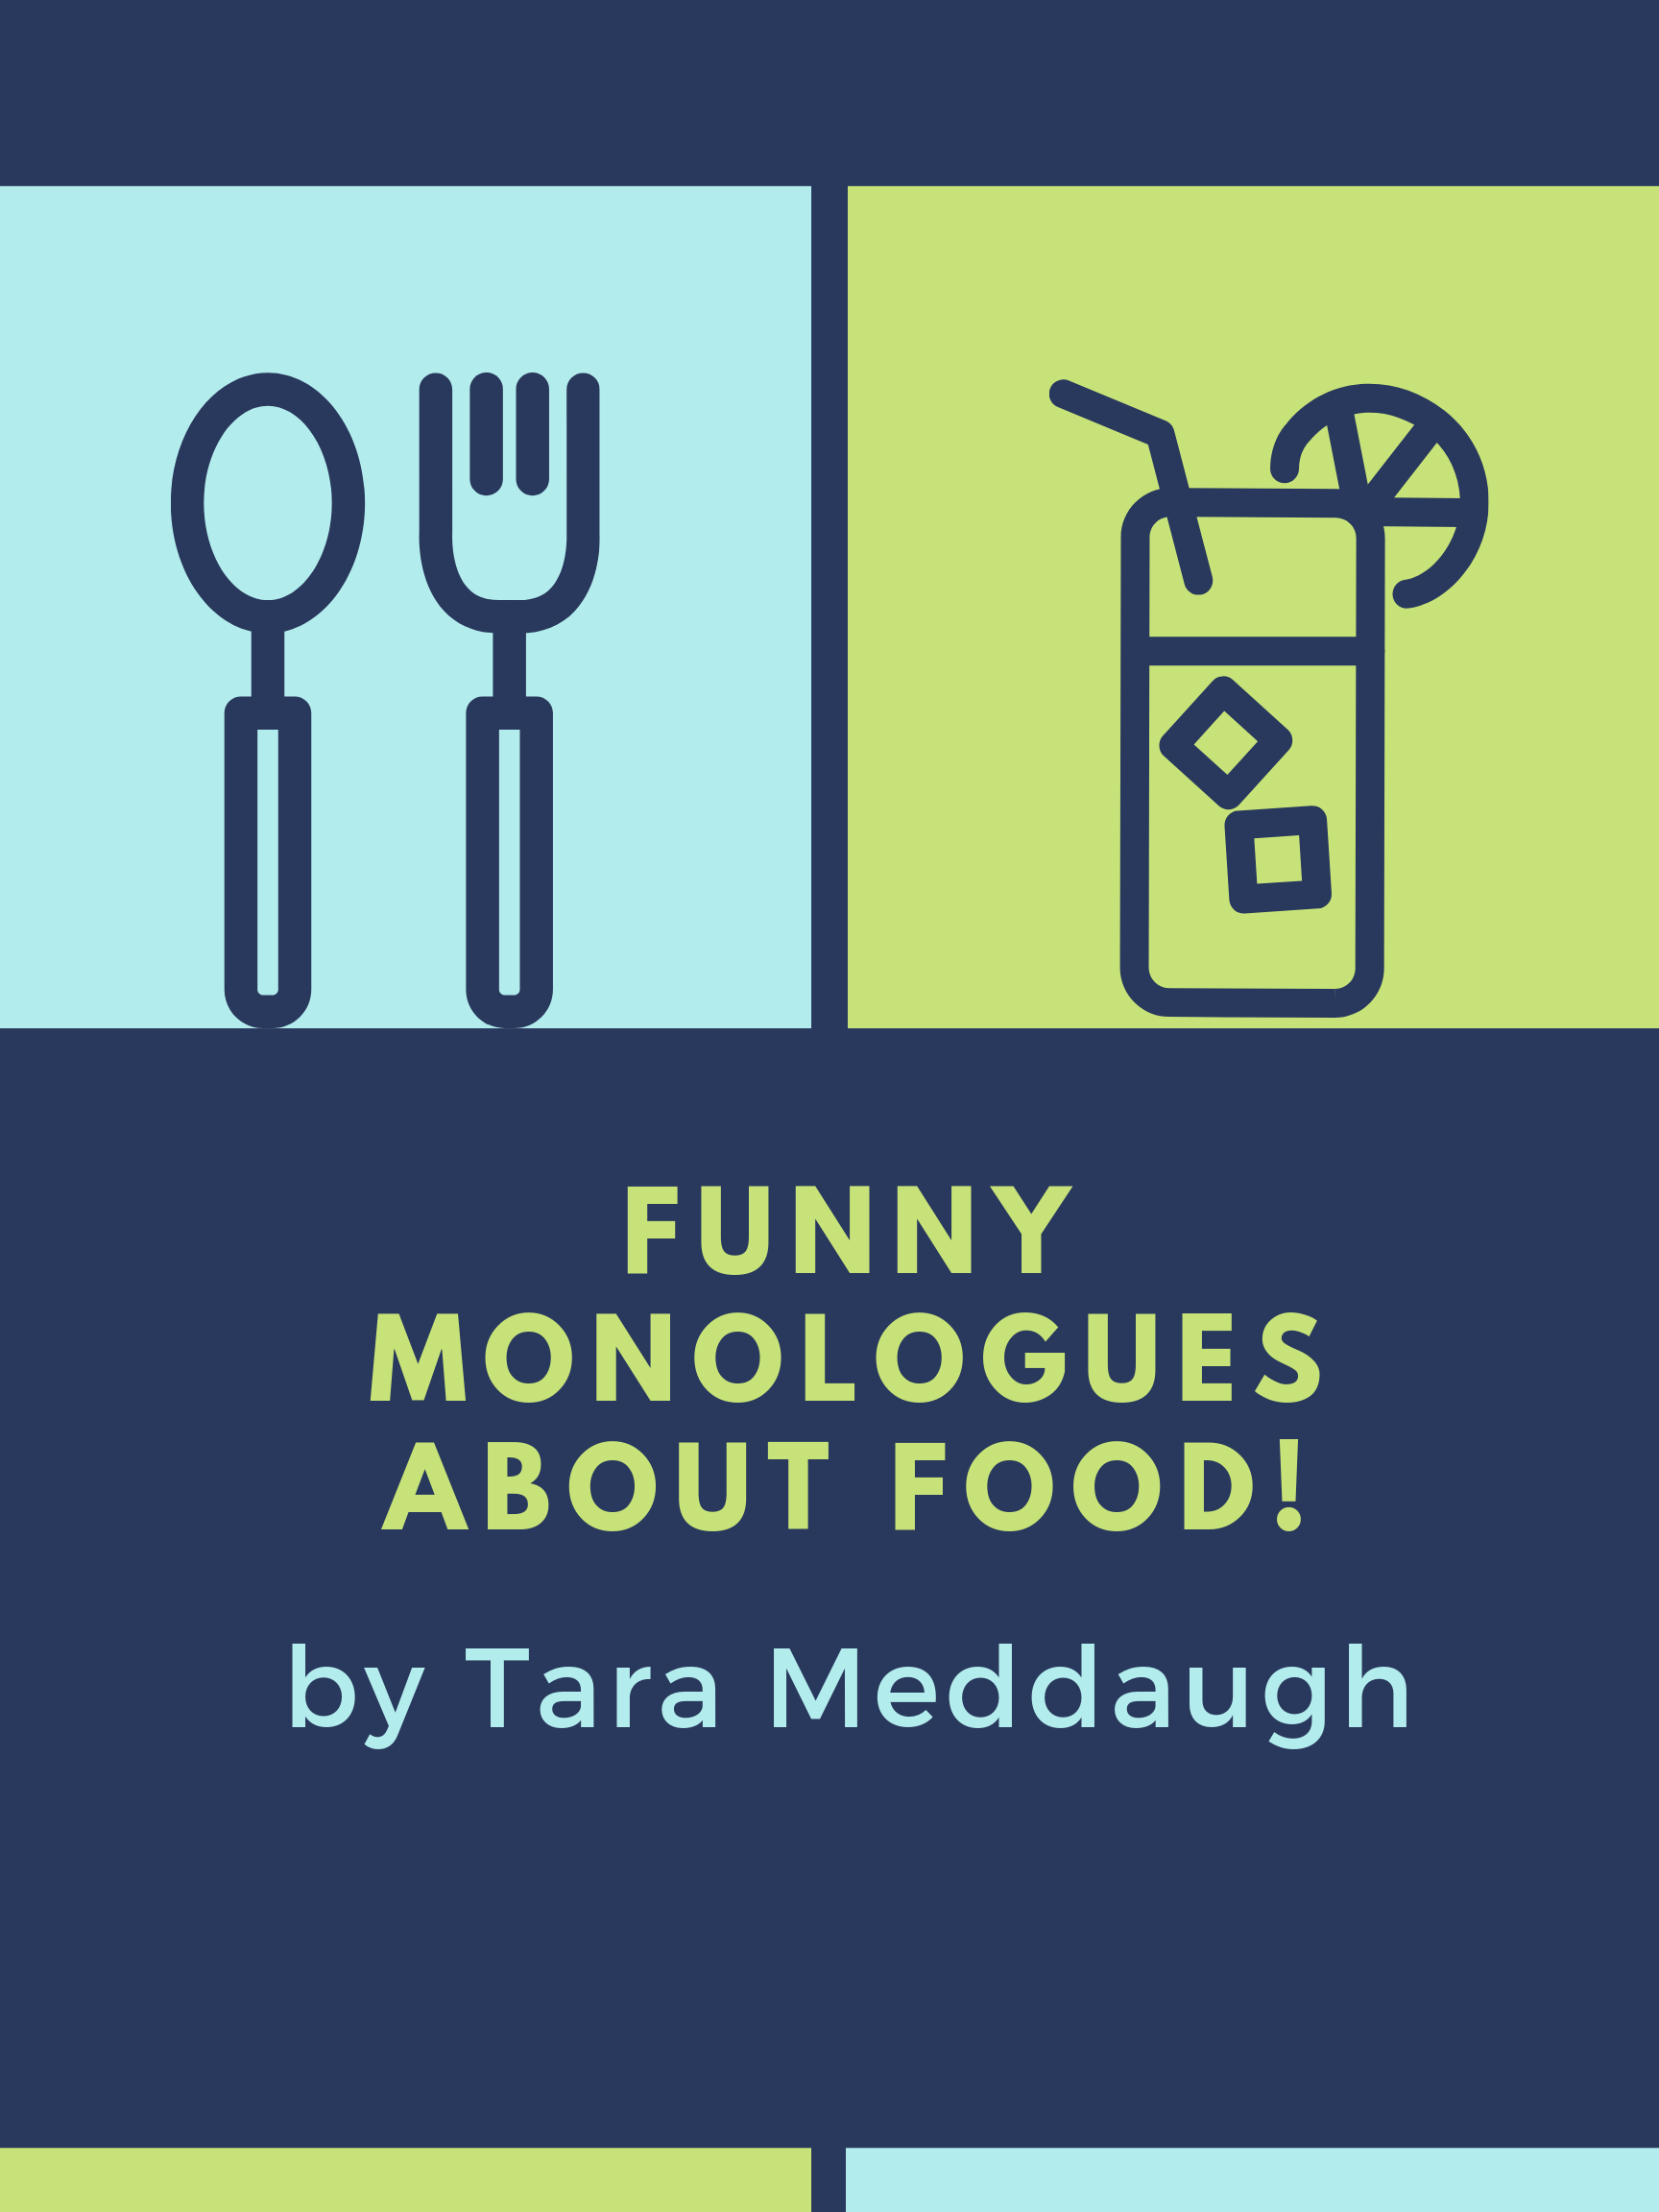 funny monologues about food.png